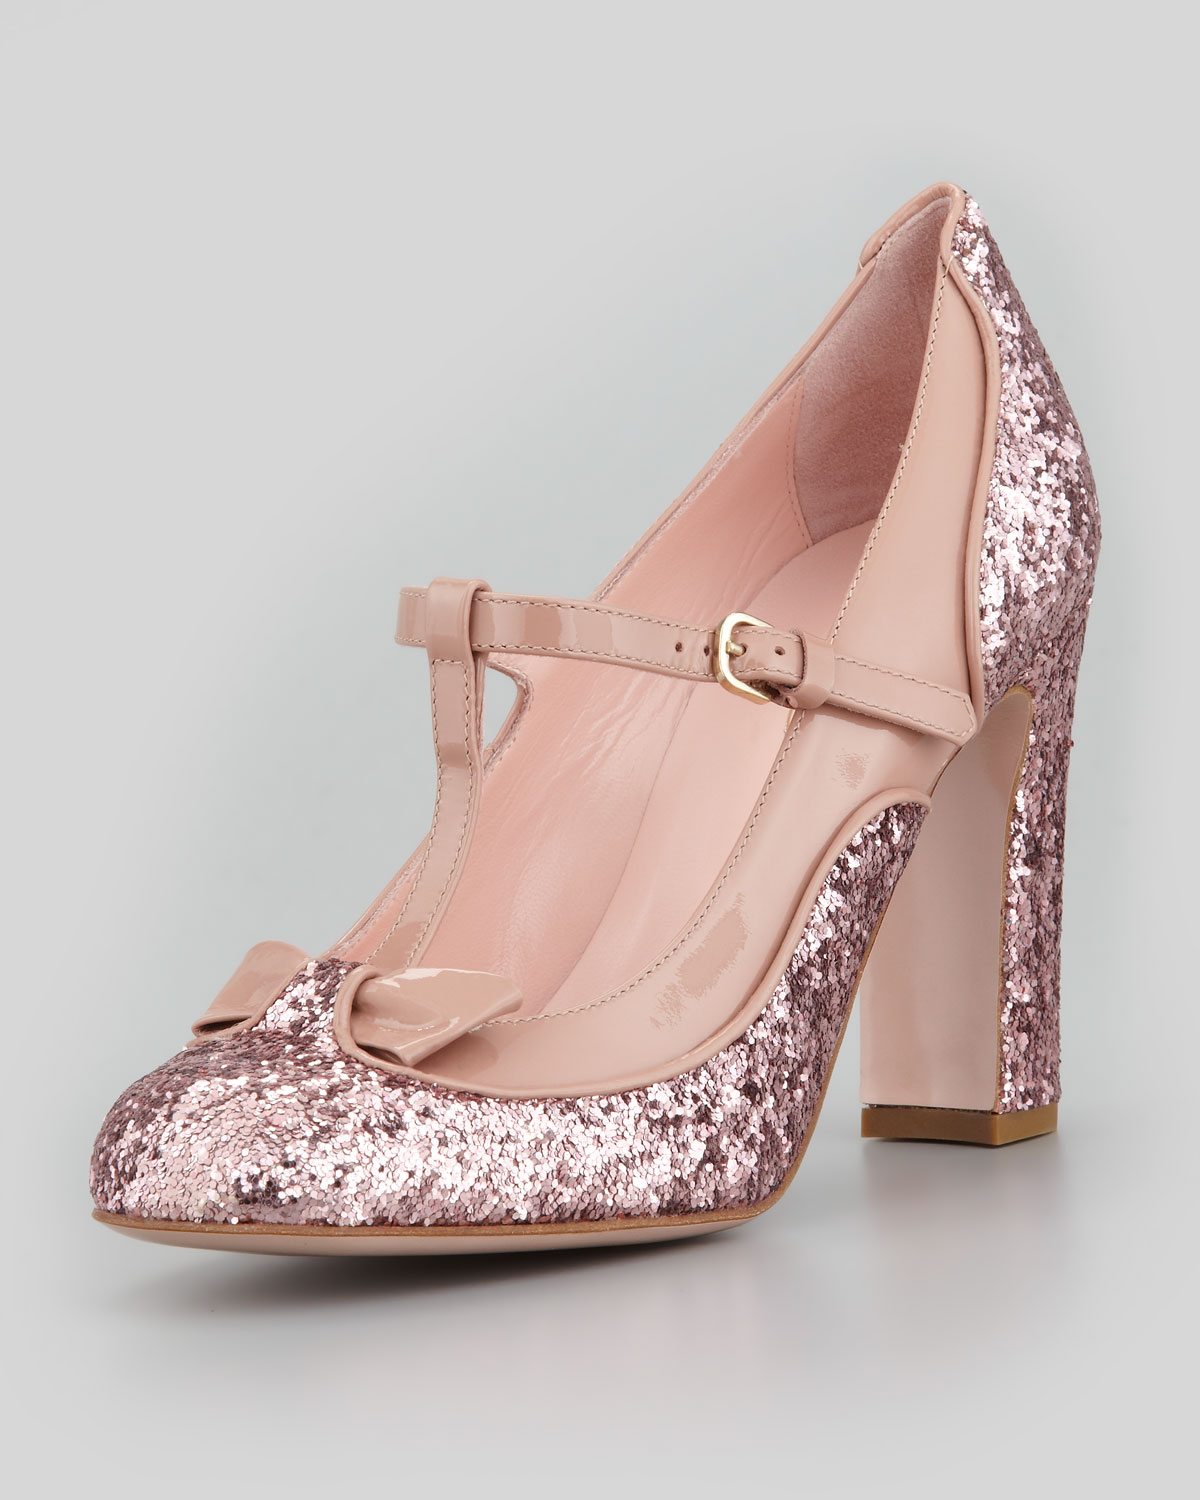 browse cheap price Red Valentino Velvet Mary Jane Pumps cheap prices authentic sale shopping online 2014 sale online in China for sale YQPD5H